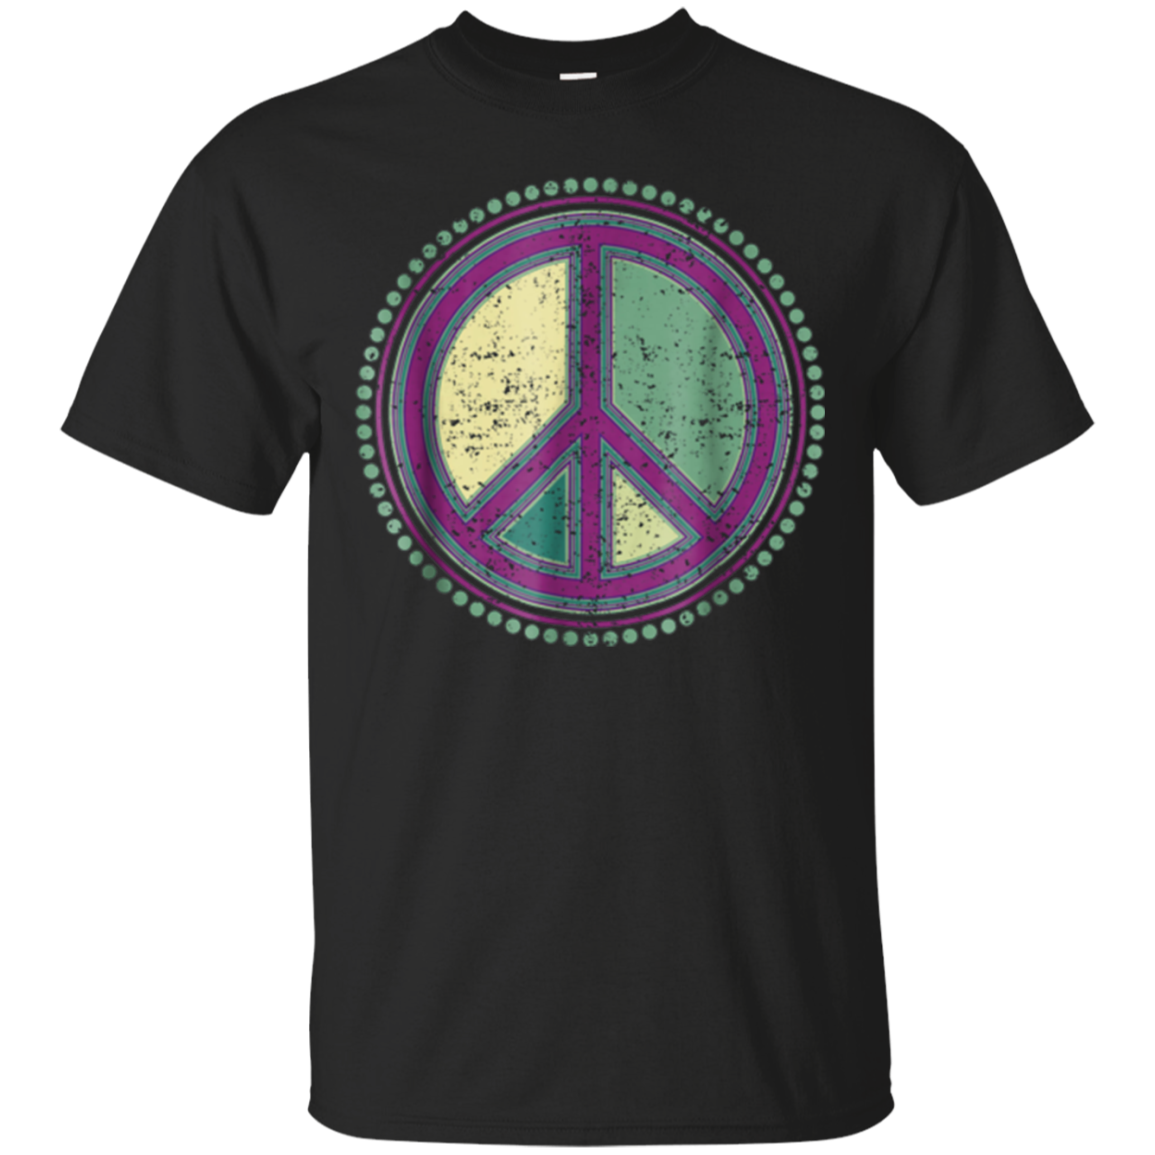 Flower Power Peace Sign - Grunge 2 Groovy Retro T-Shirt